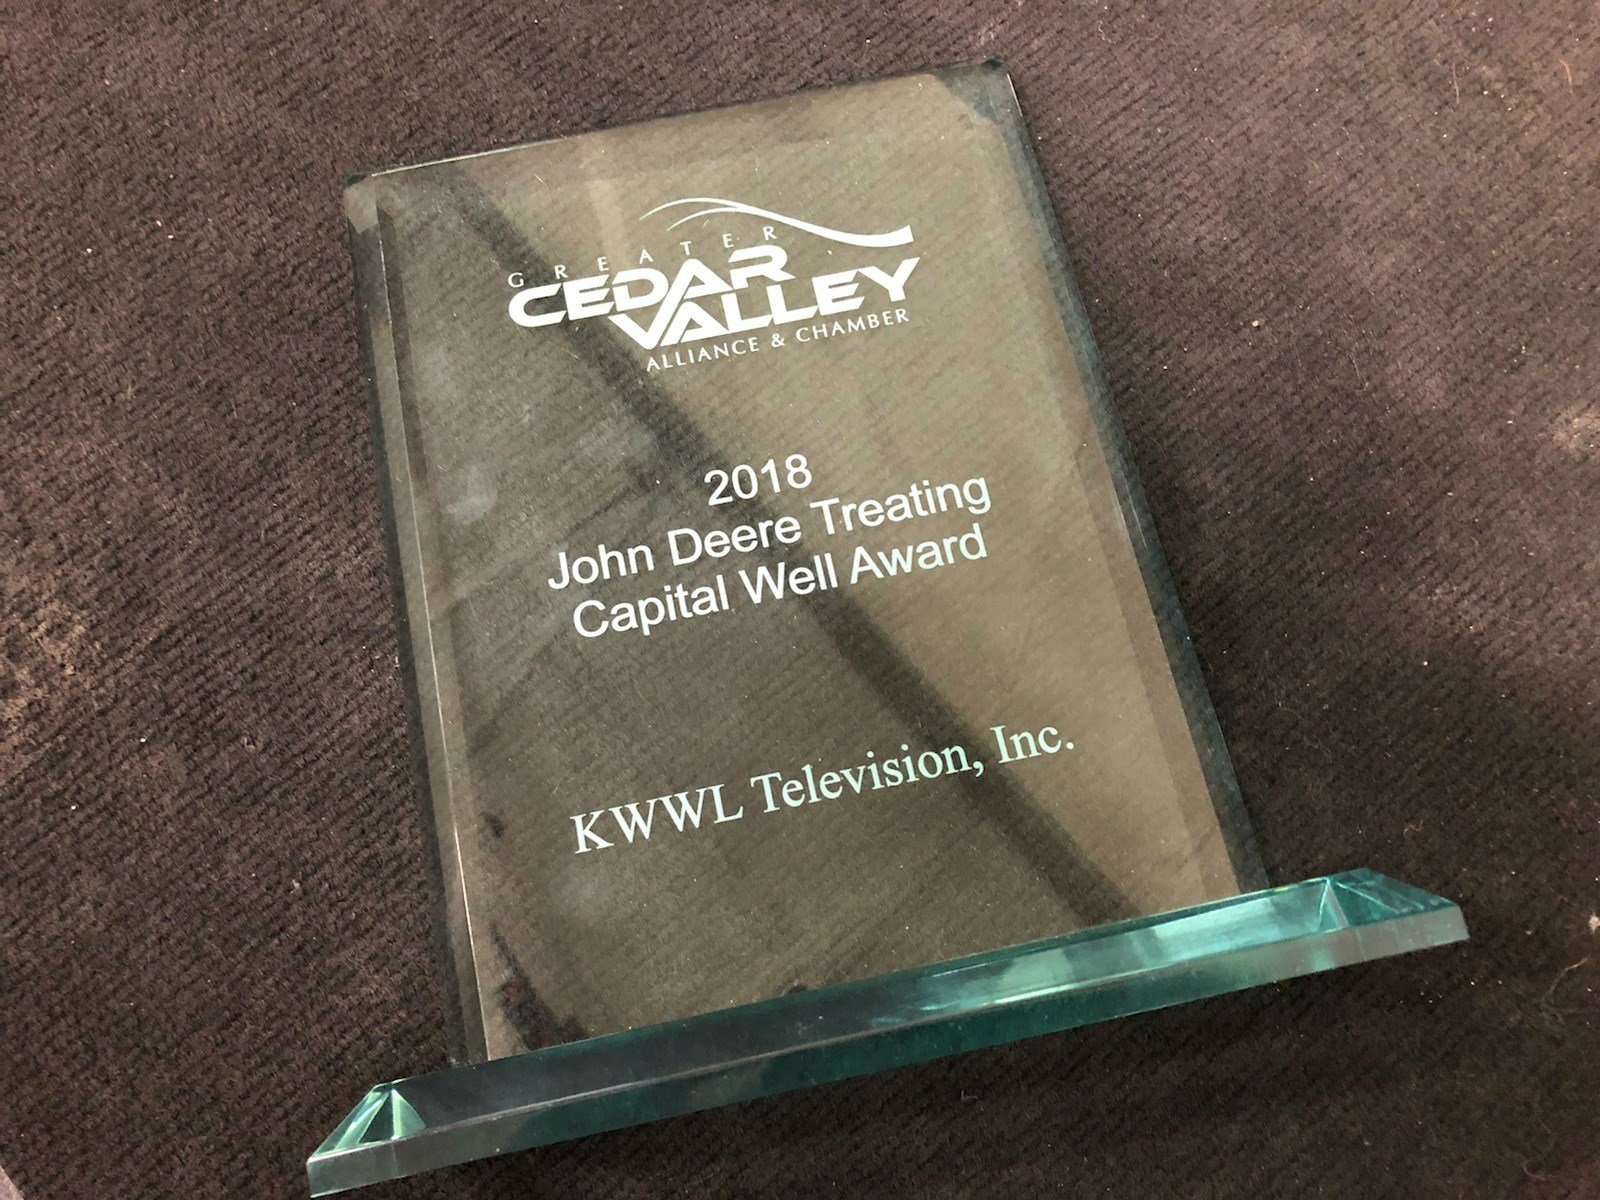 KWWL was awarded the John Deere Treating Capital Well Award on Tuesday night in Waterloo.